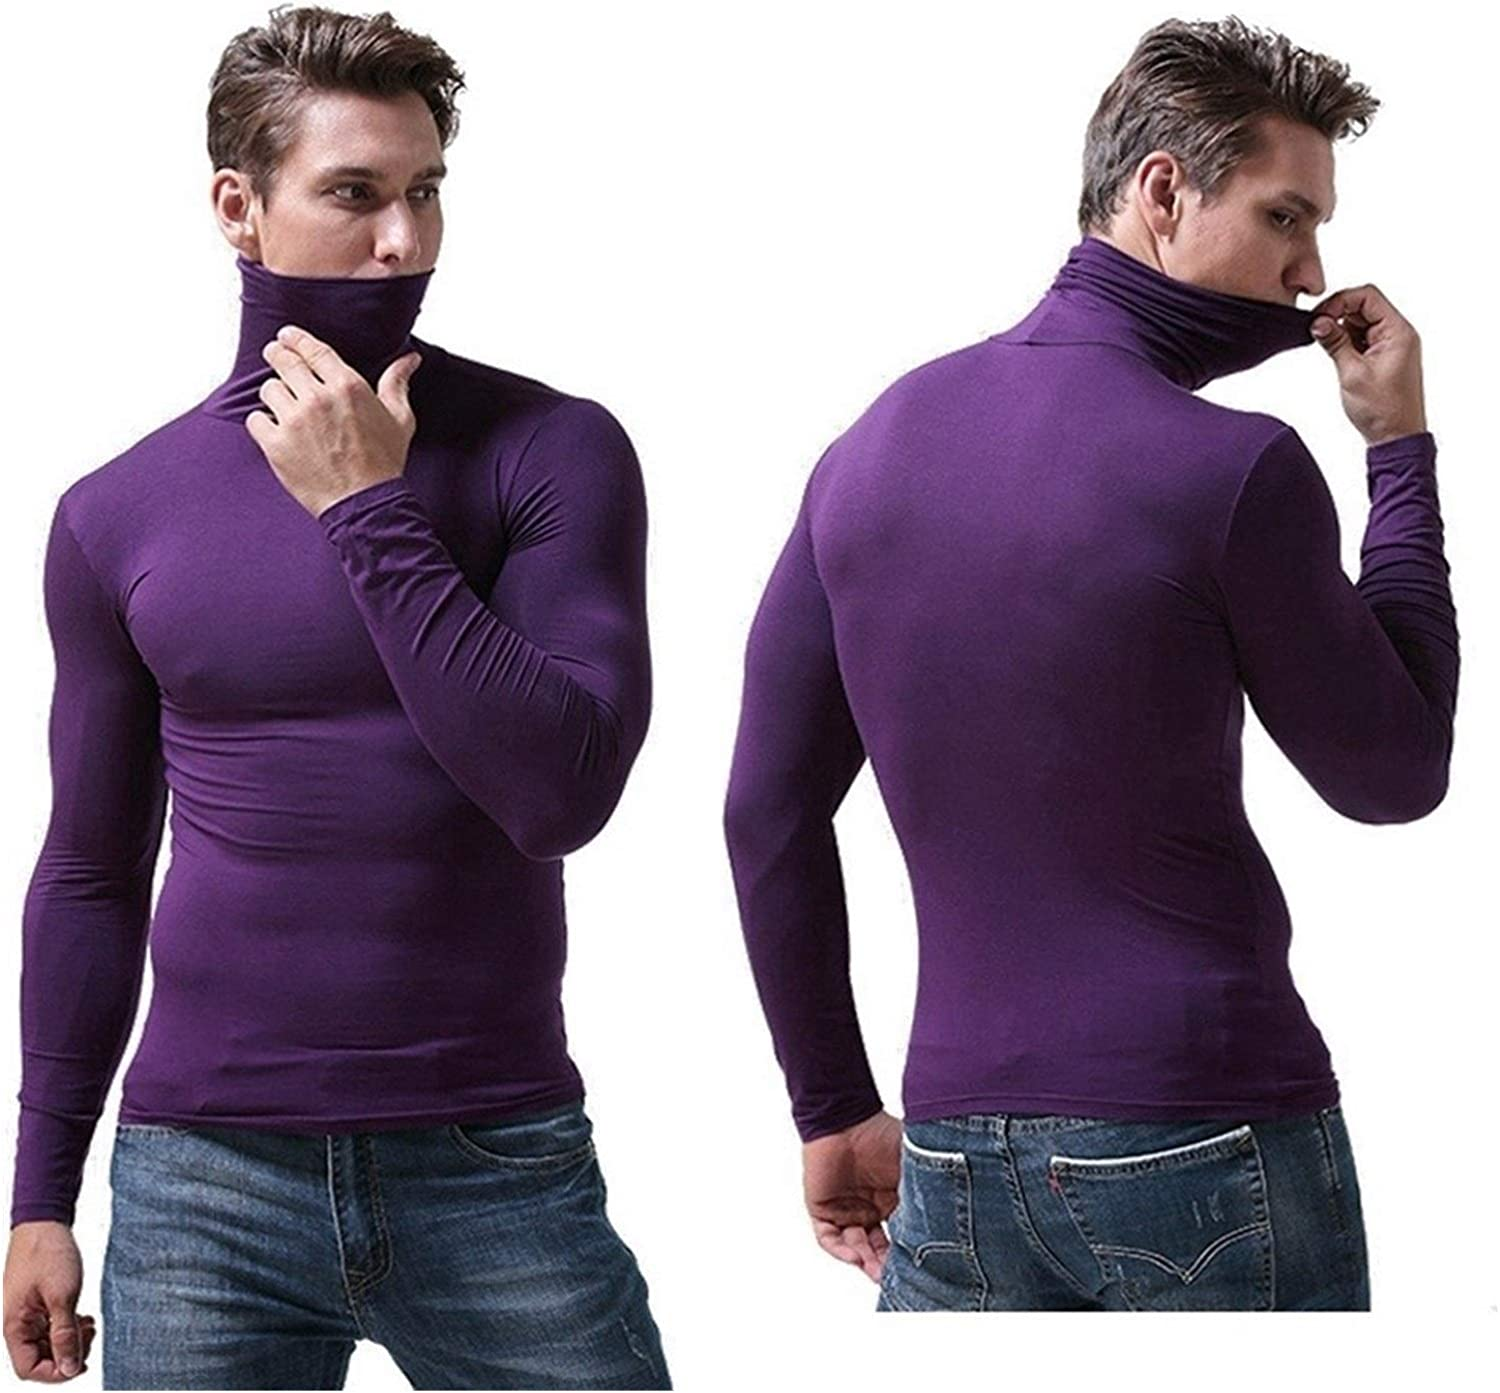 QWERBAM Men Winter Underwear Men Thermo Underwear Winter Thermal Underwear Male Winter Warm Shirt (Color : Light Gray, Size : Large)